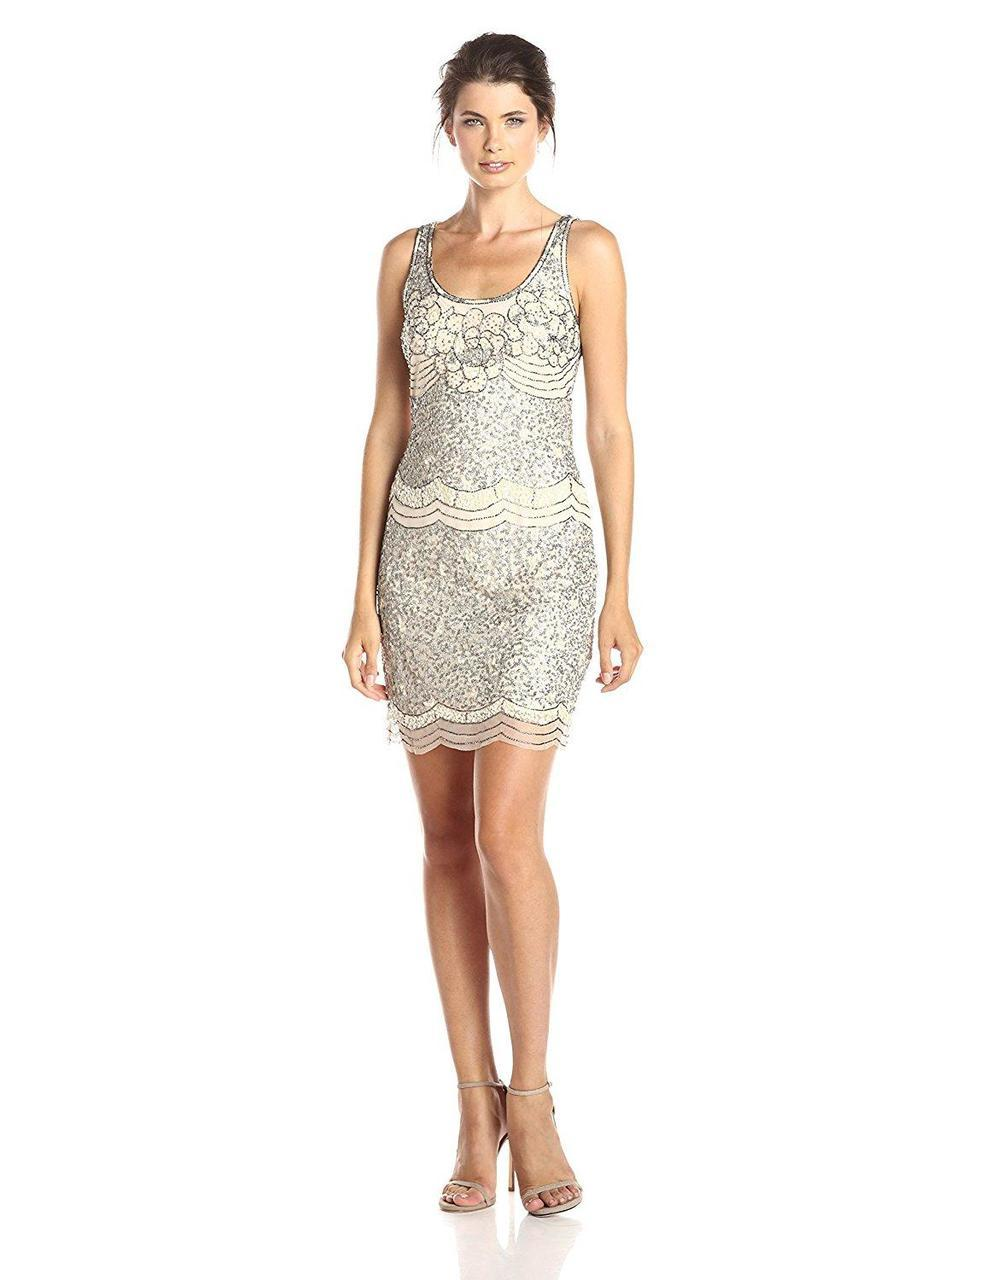 Adrianna Papell - Scalloped Sequins Dress 41912200 in Neutral